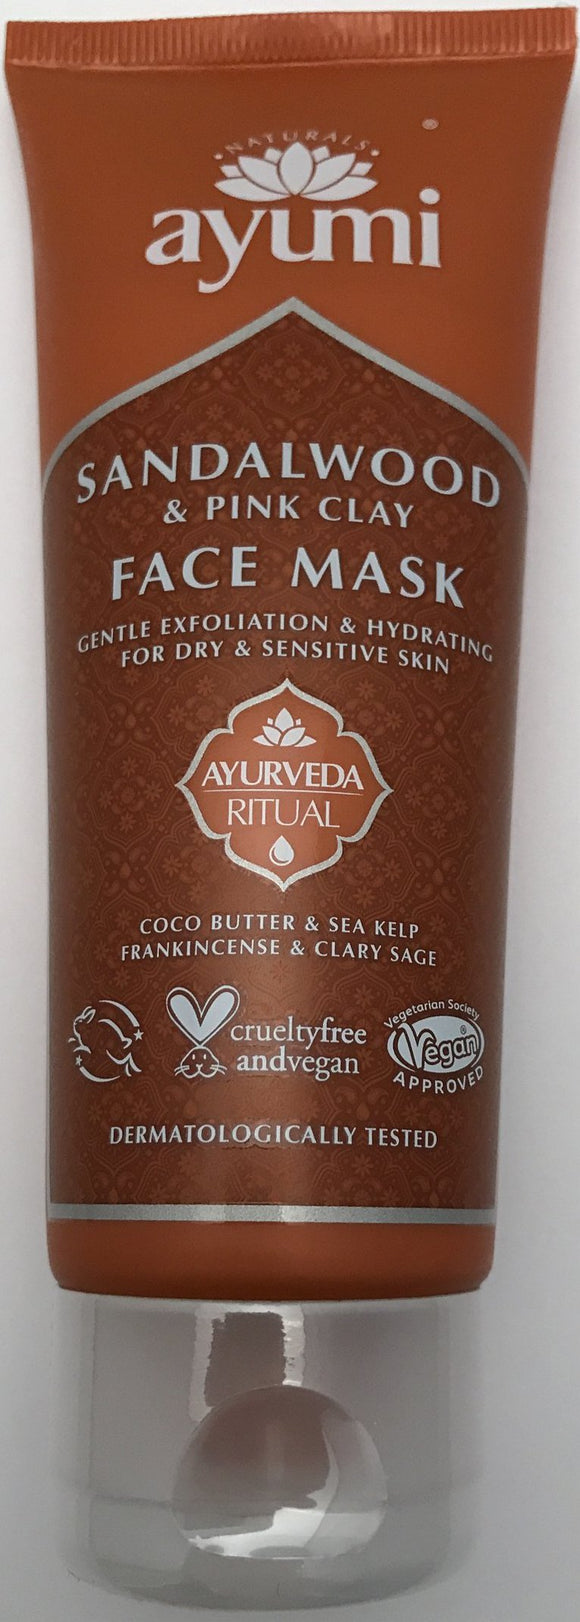 Ayumi Sandalwood and Pink Clay Face Mask - - ExoticEstore